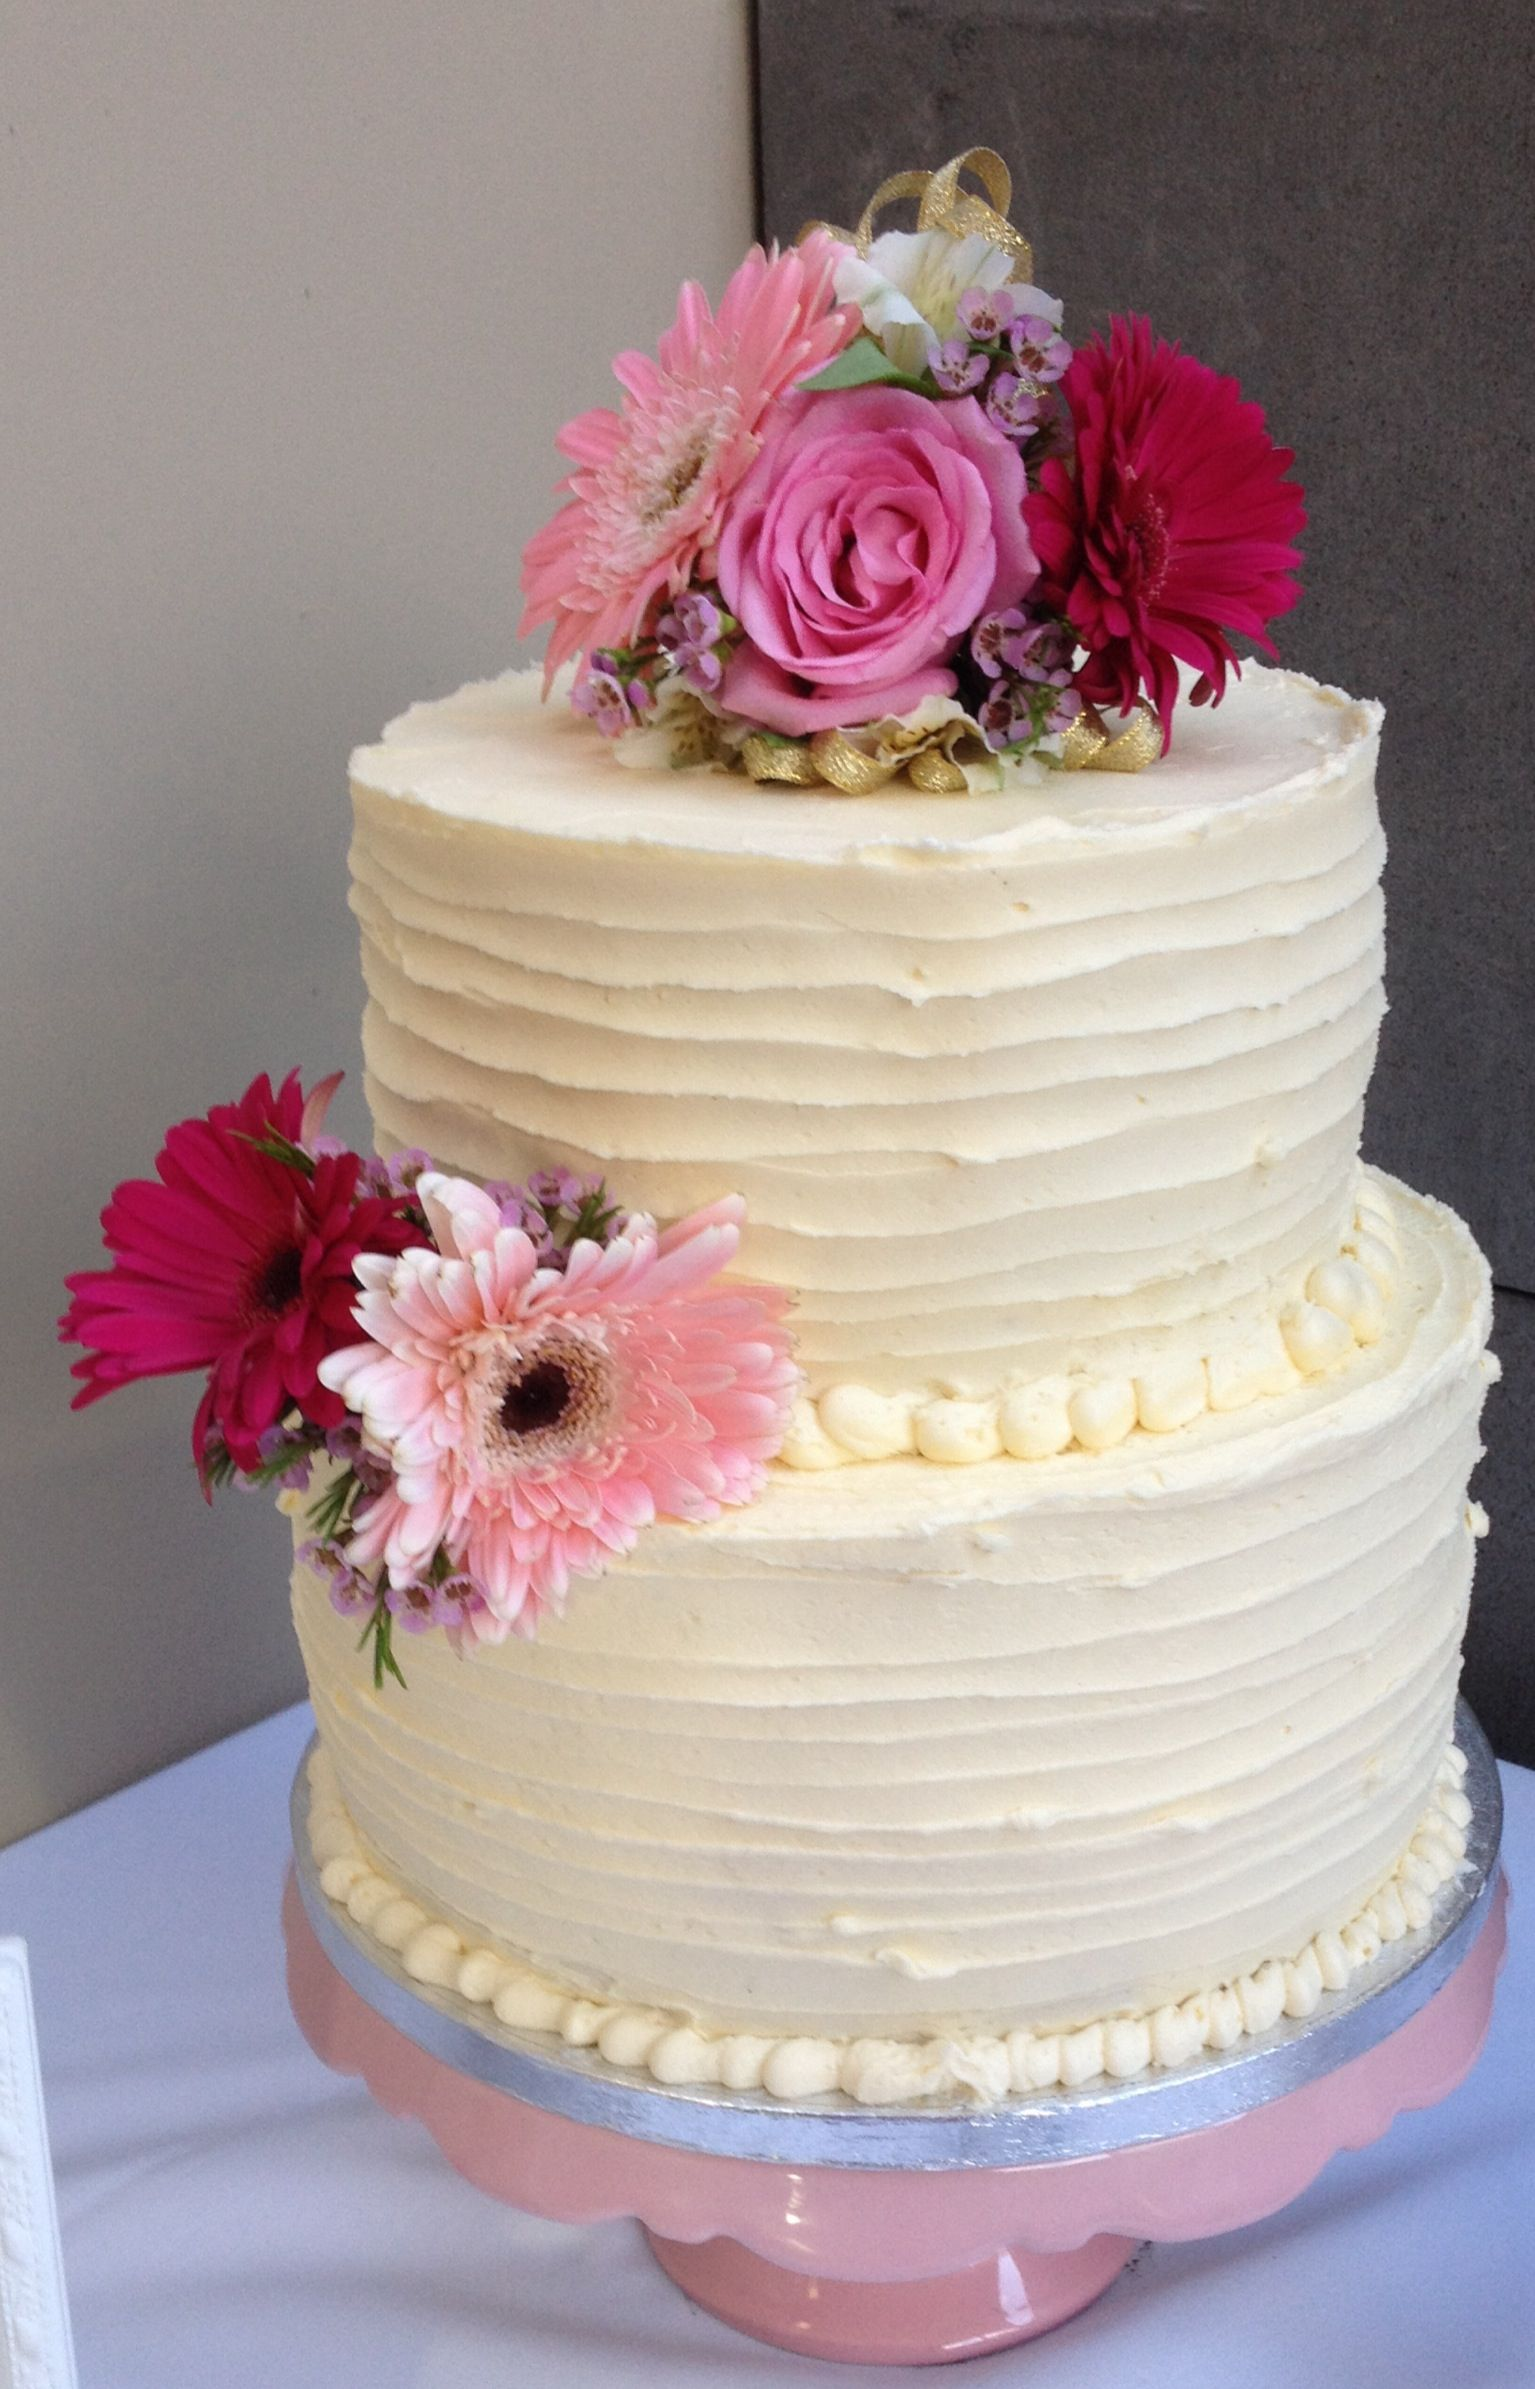 Wedding Cake 10 Inch Bottom 8 Inch Top Vanilla Buttercake With Vanilla Buttercream Cakes In 2019 Pinterest Wedding Cake And Wedding Cakes